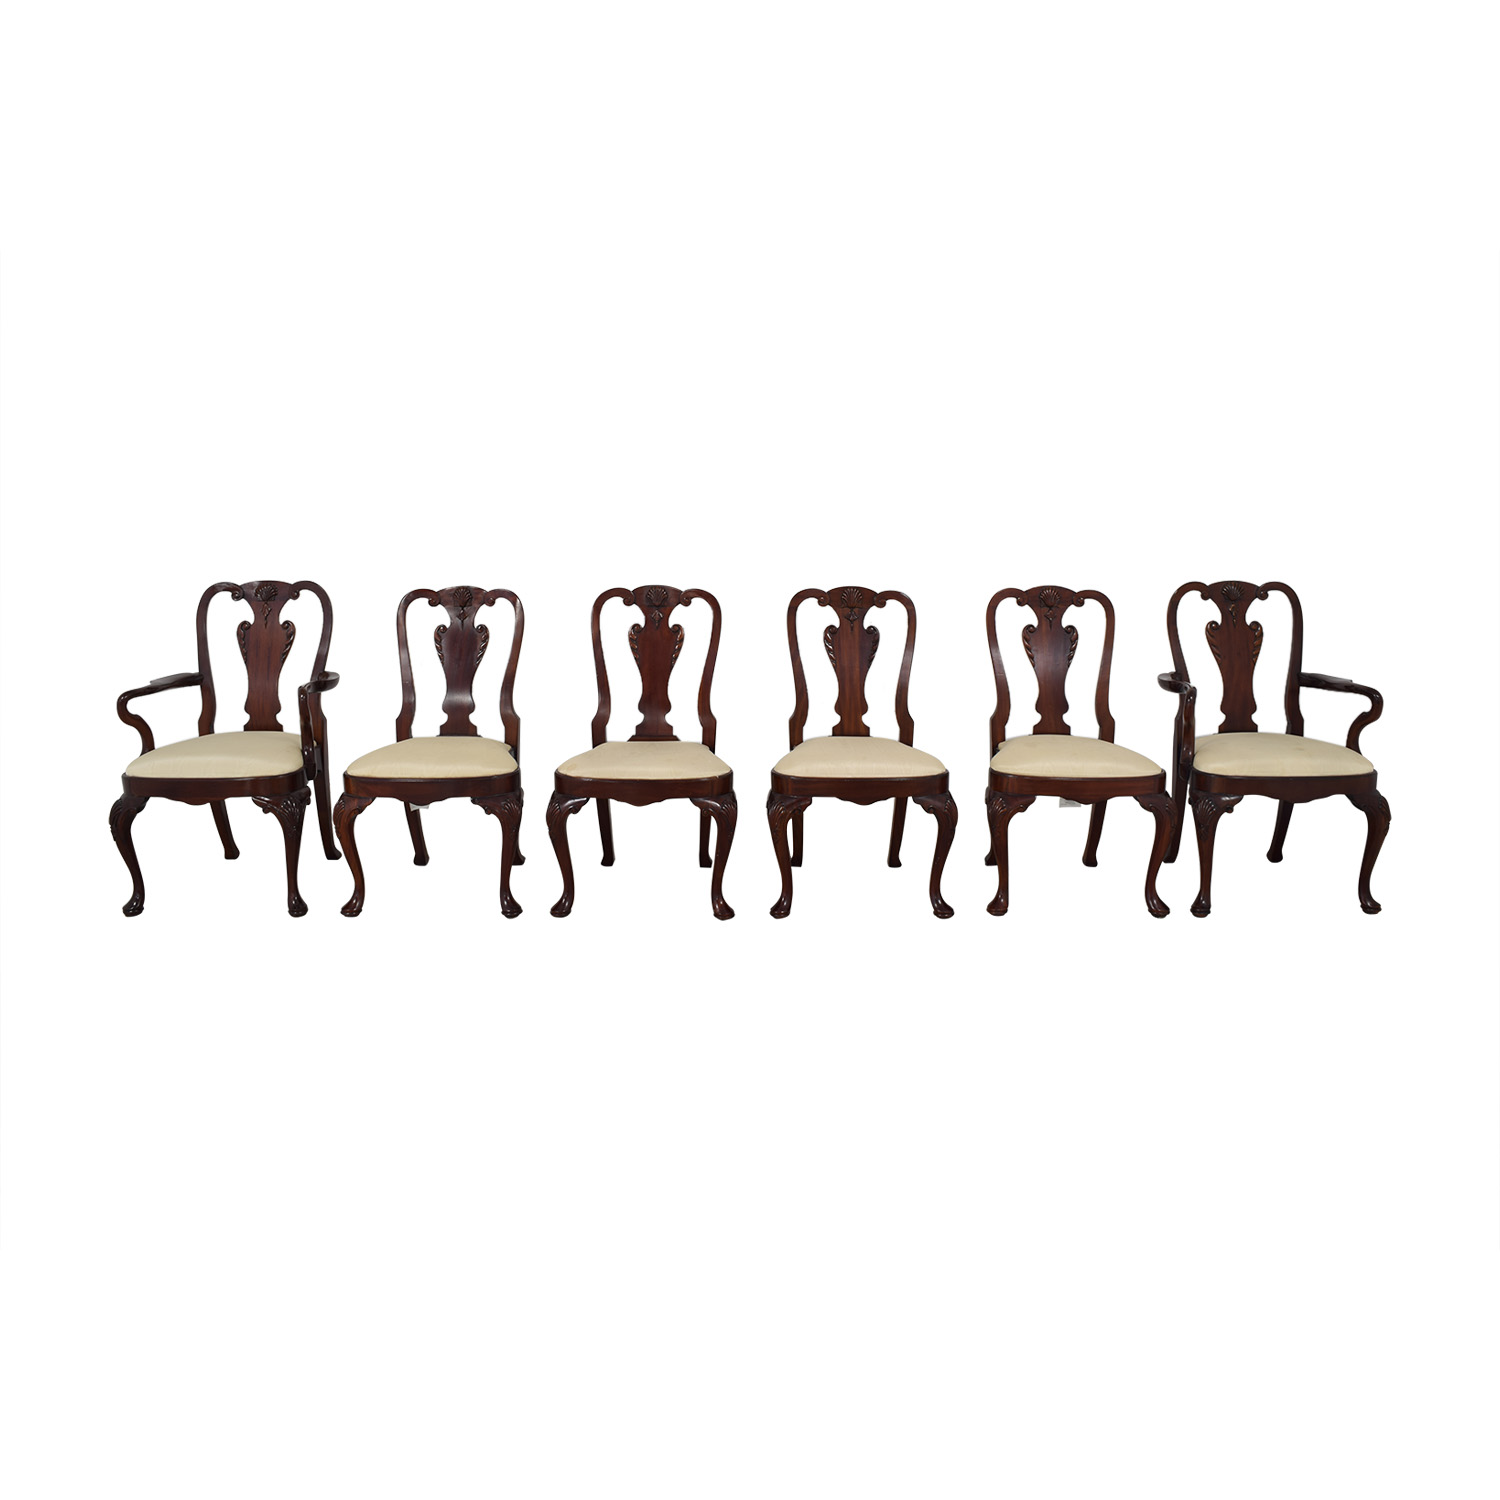 buy Maitland-Smith Maitland-Smith Dining Chairs online